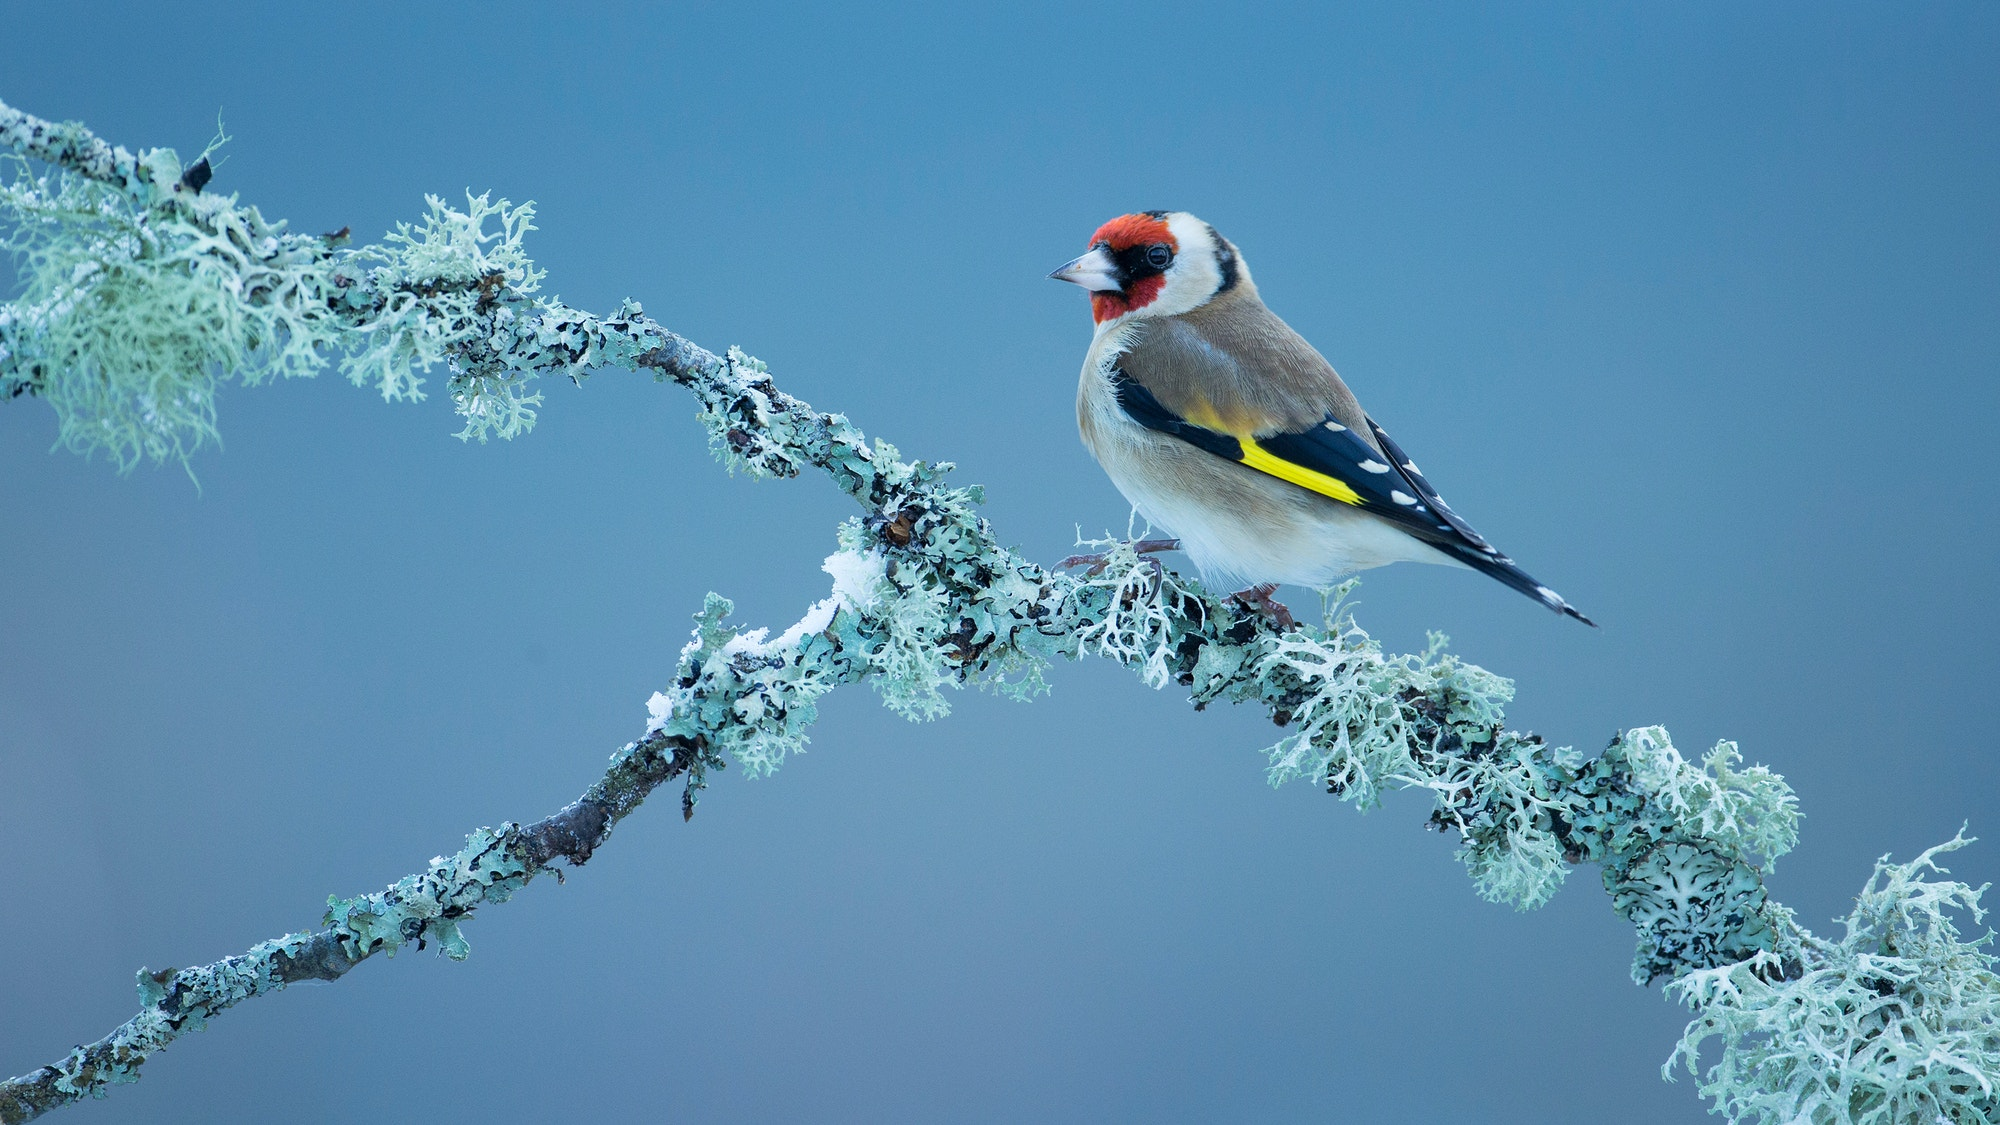 Goldfinch SBP PC